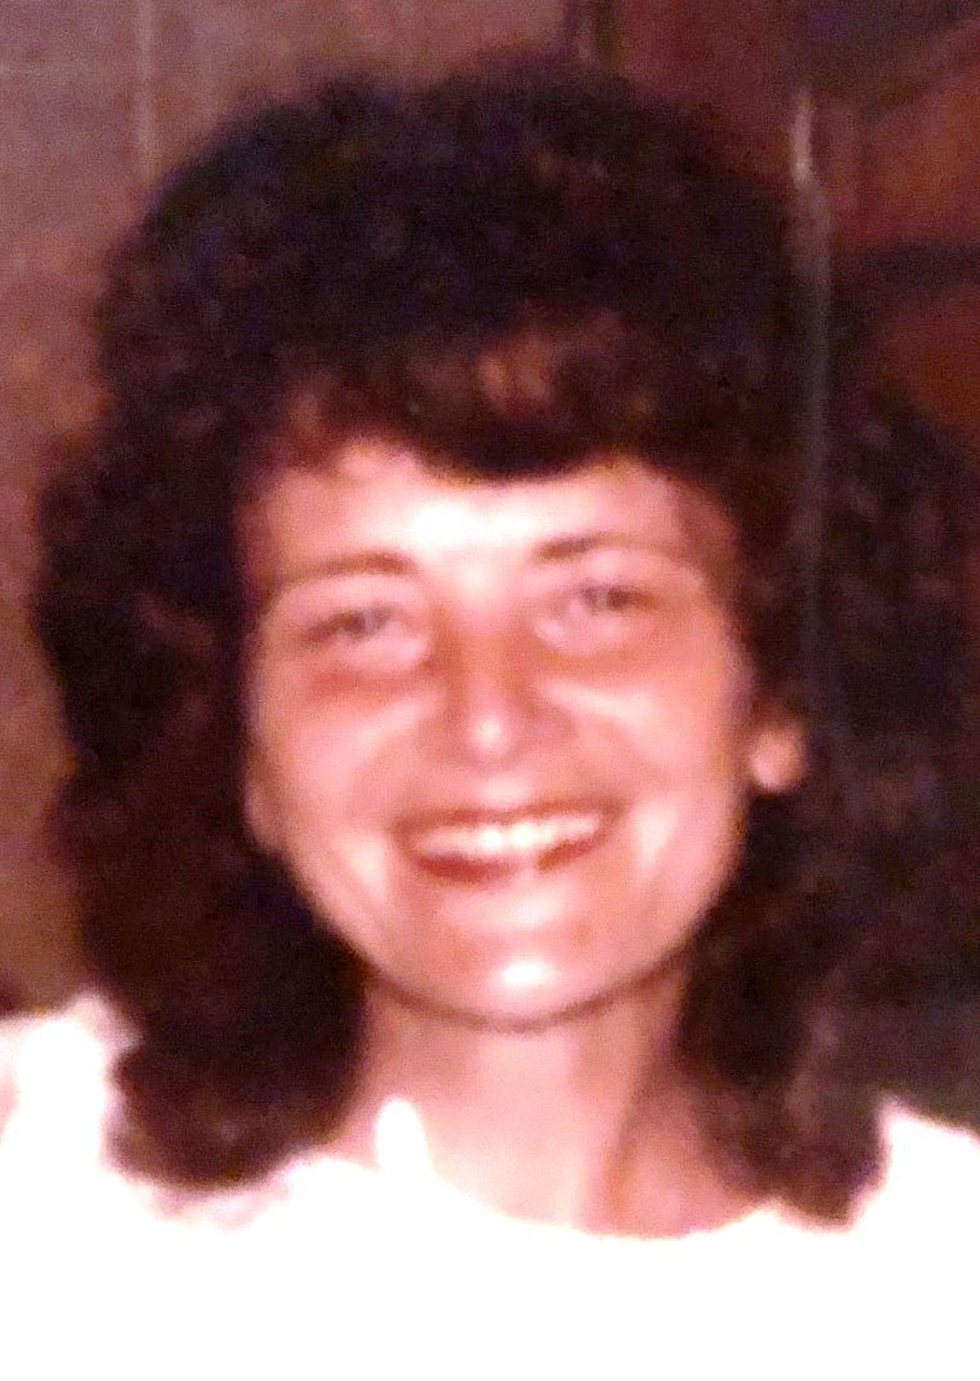 Sally was born on August 26th, 1941 of Francis John and Verna Toth Forney and was raised in...